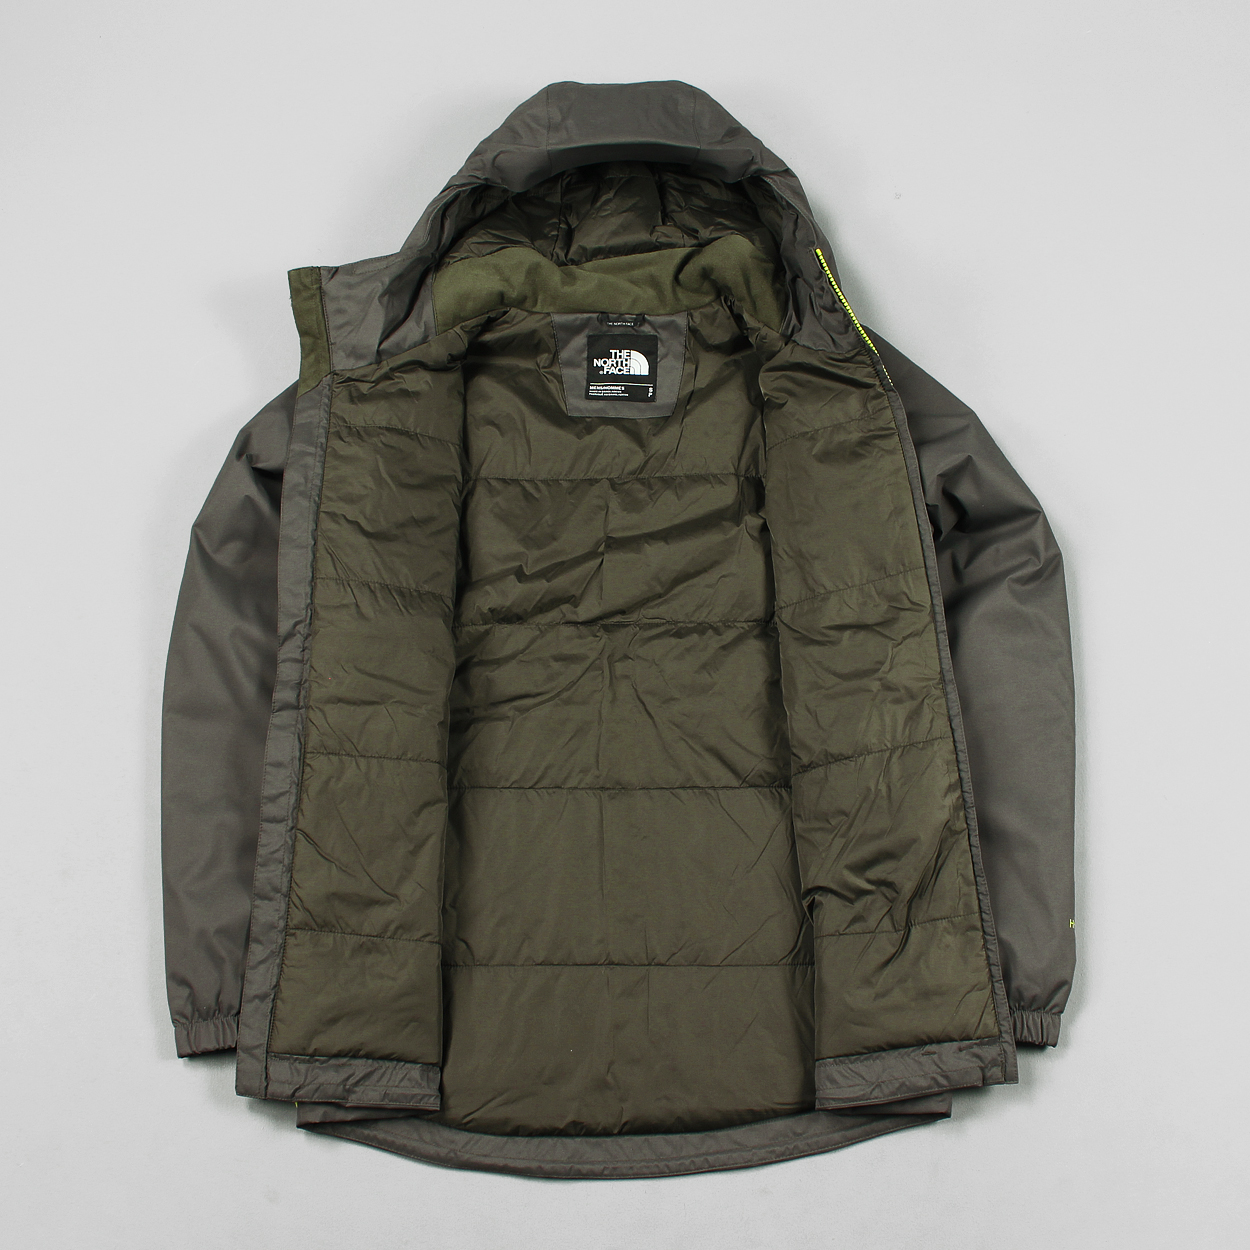 9c170892ceb3 A redesigned version of the iconic Quest jacket from The North Face with a  Heatseeker insulated lining and a Hyvent waterproof shell. In Black Ink  Green.